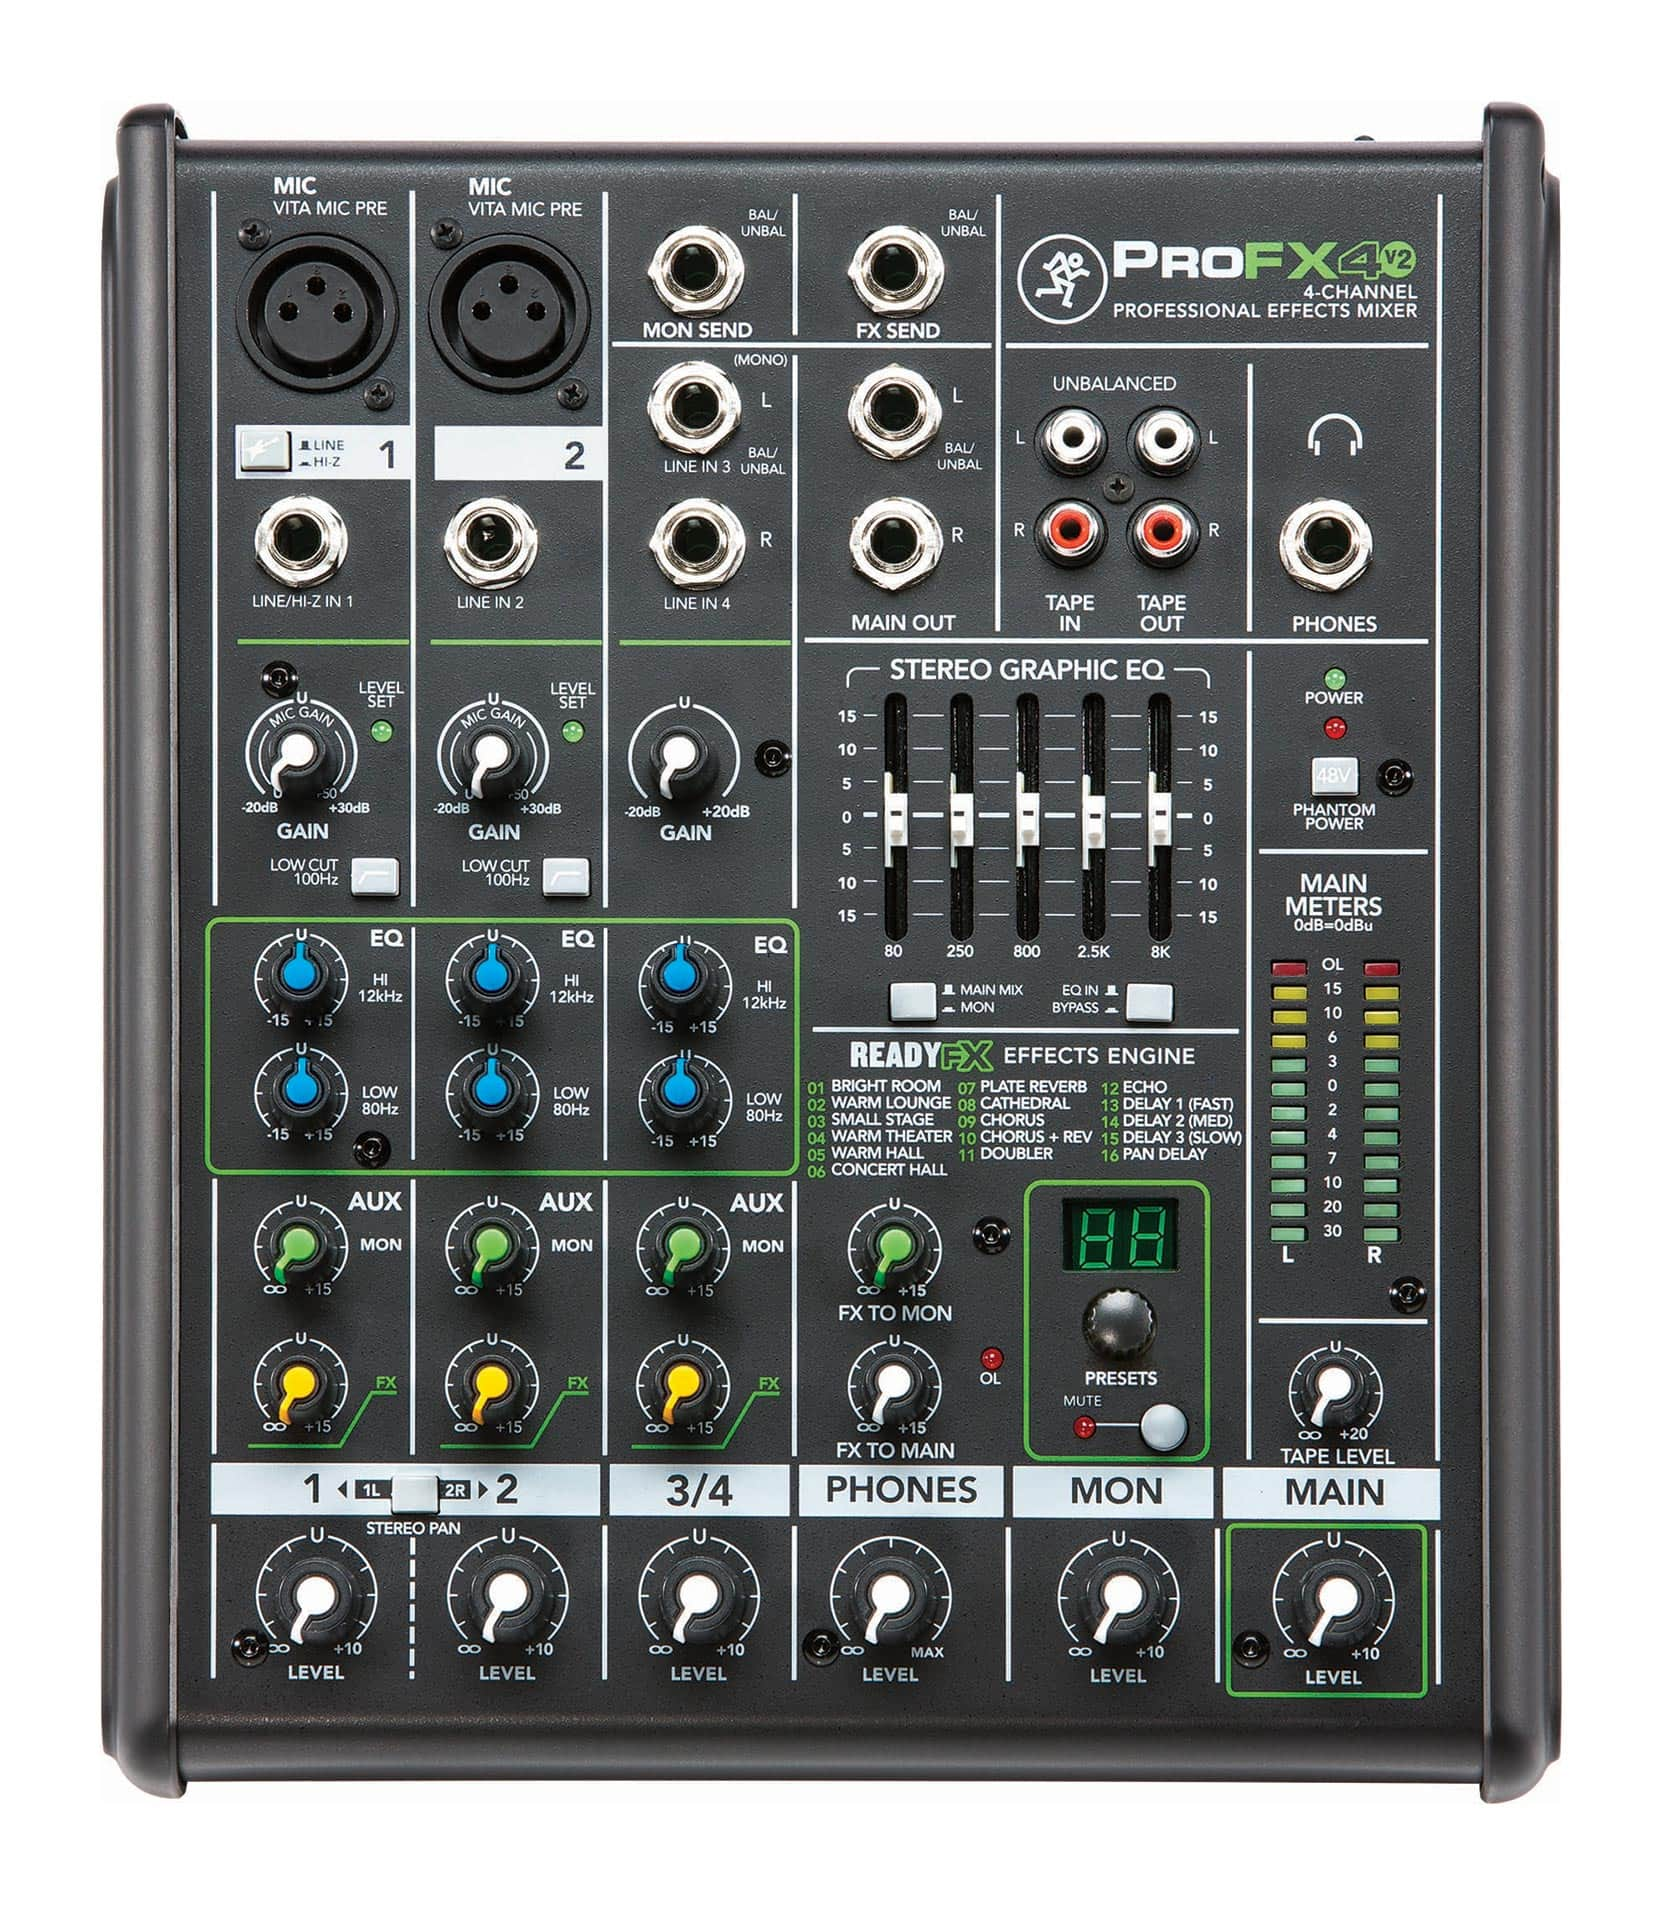 mackie - ProFX4 V2 4 Channel Effects Mixer UK Plug - Melody House Musical Instruments